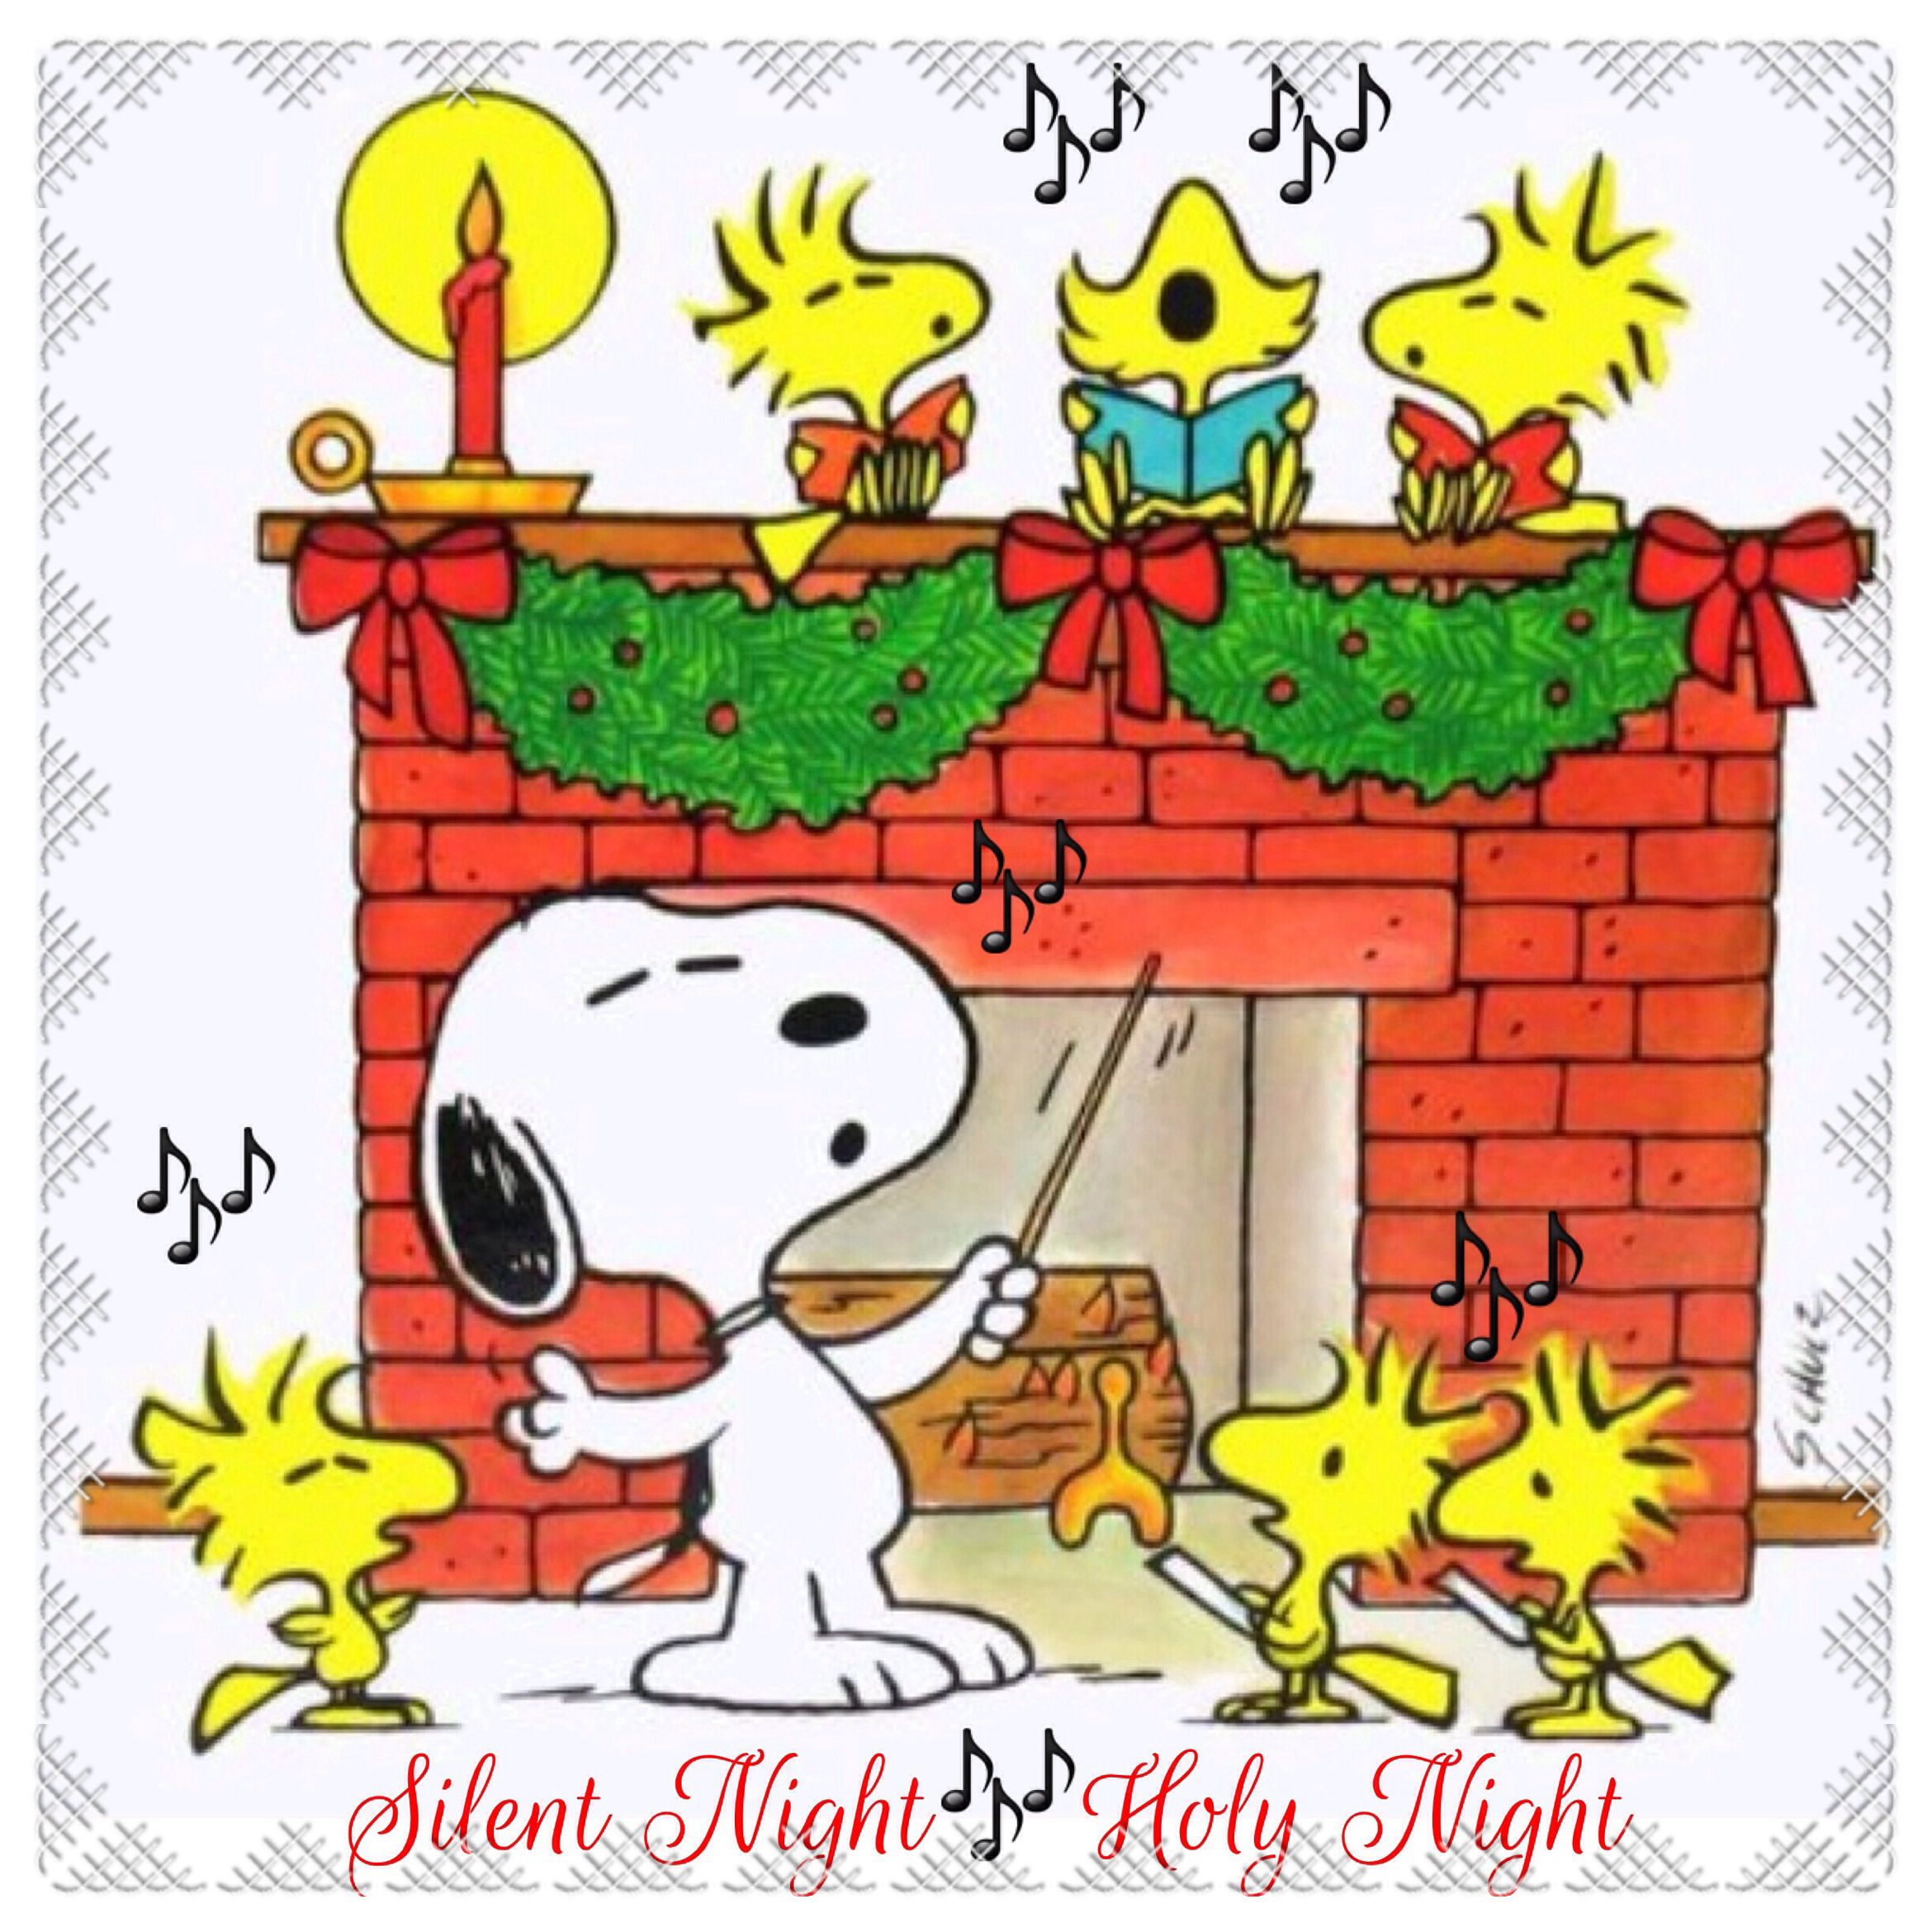 a peanuts christmas love the lil woodstock with his mouth wide open in song - Peanuts Christmas